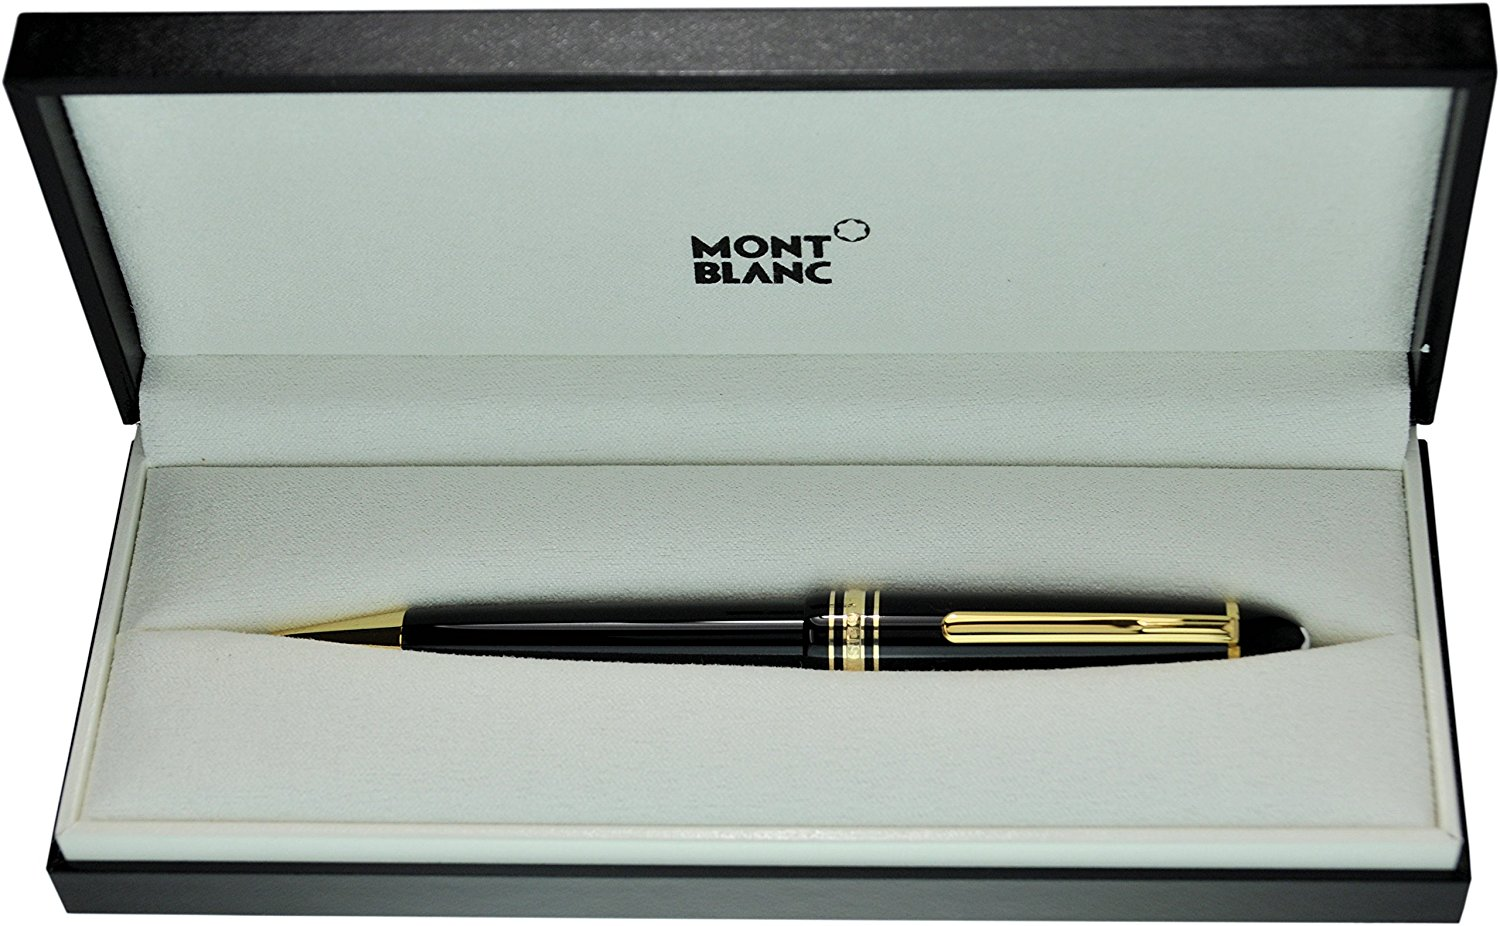 Montblanc Meisterstuck Le Grand 161 Gold & Black Ballpoint Pen - Mint Only One Good Quality Luxury Pen Best Gift